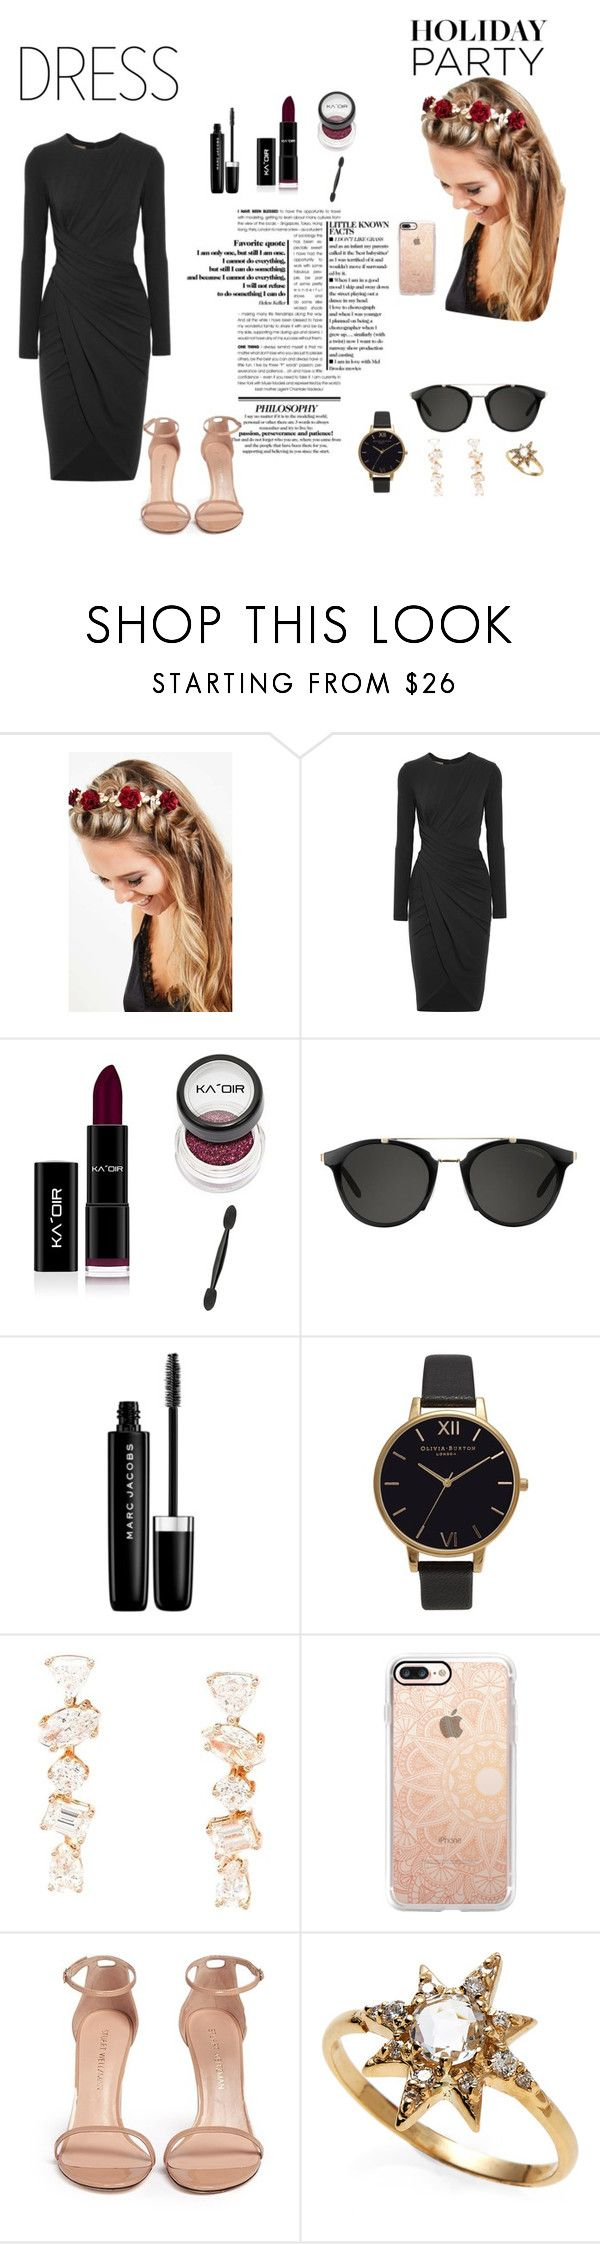 """Untitled #2"" by silviamachado20 ❤ liked on Polyvore featuring Johnny Loves Rosie, Michael Kors, Carrera, Marc Jacobs, Olivia Burton, Kimberly McDonald, Casetify, Stuart Weitzman and Anzie"